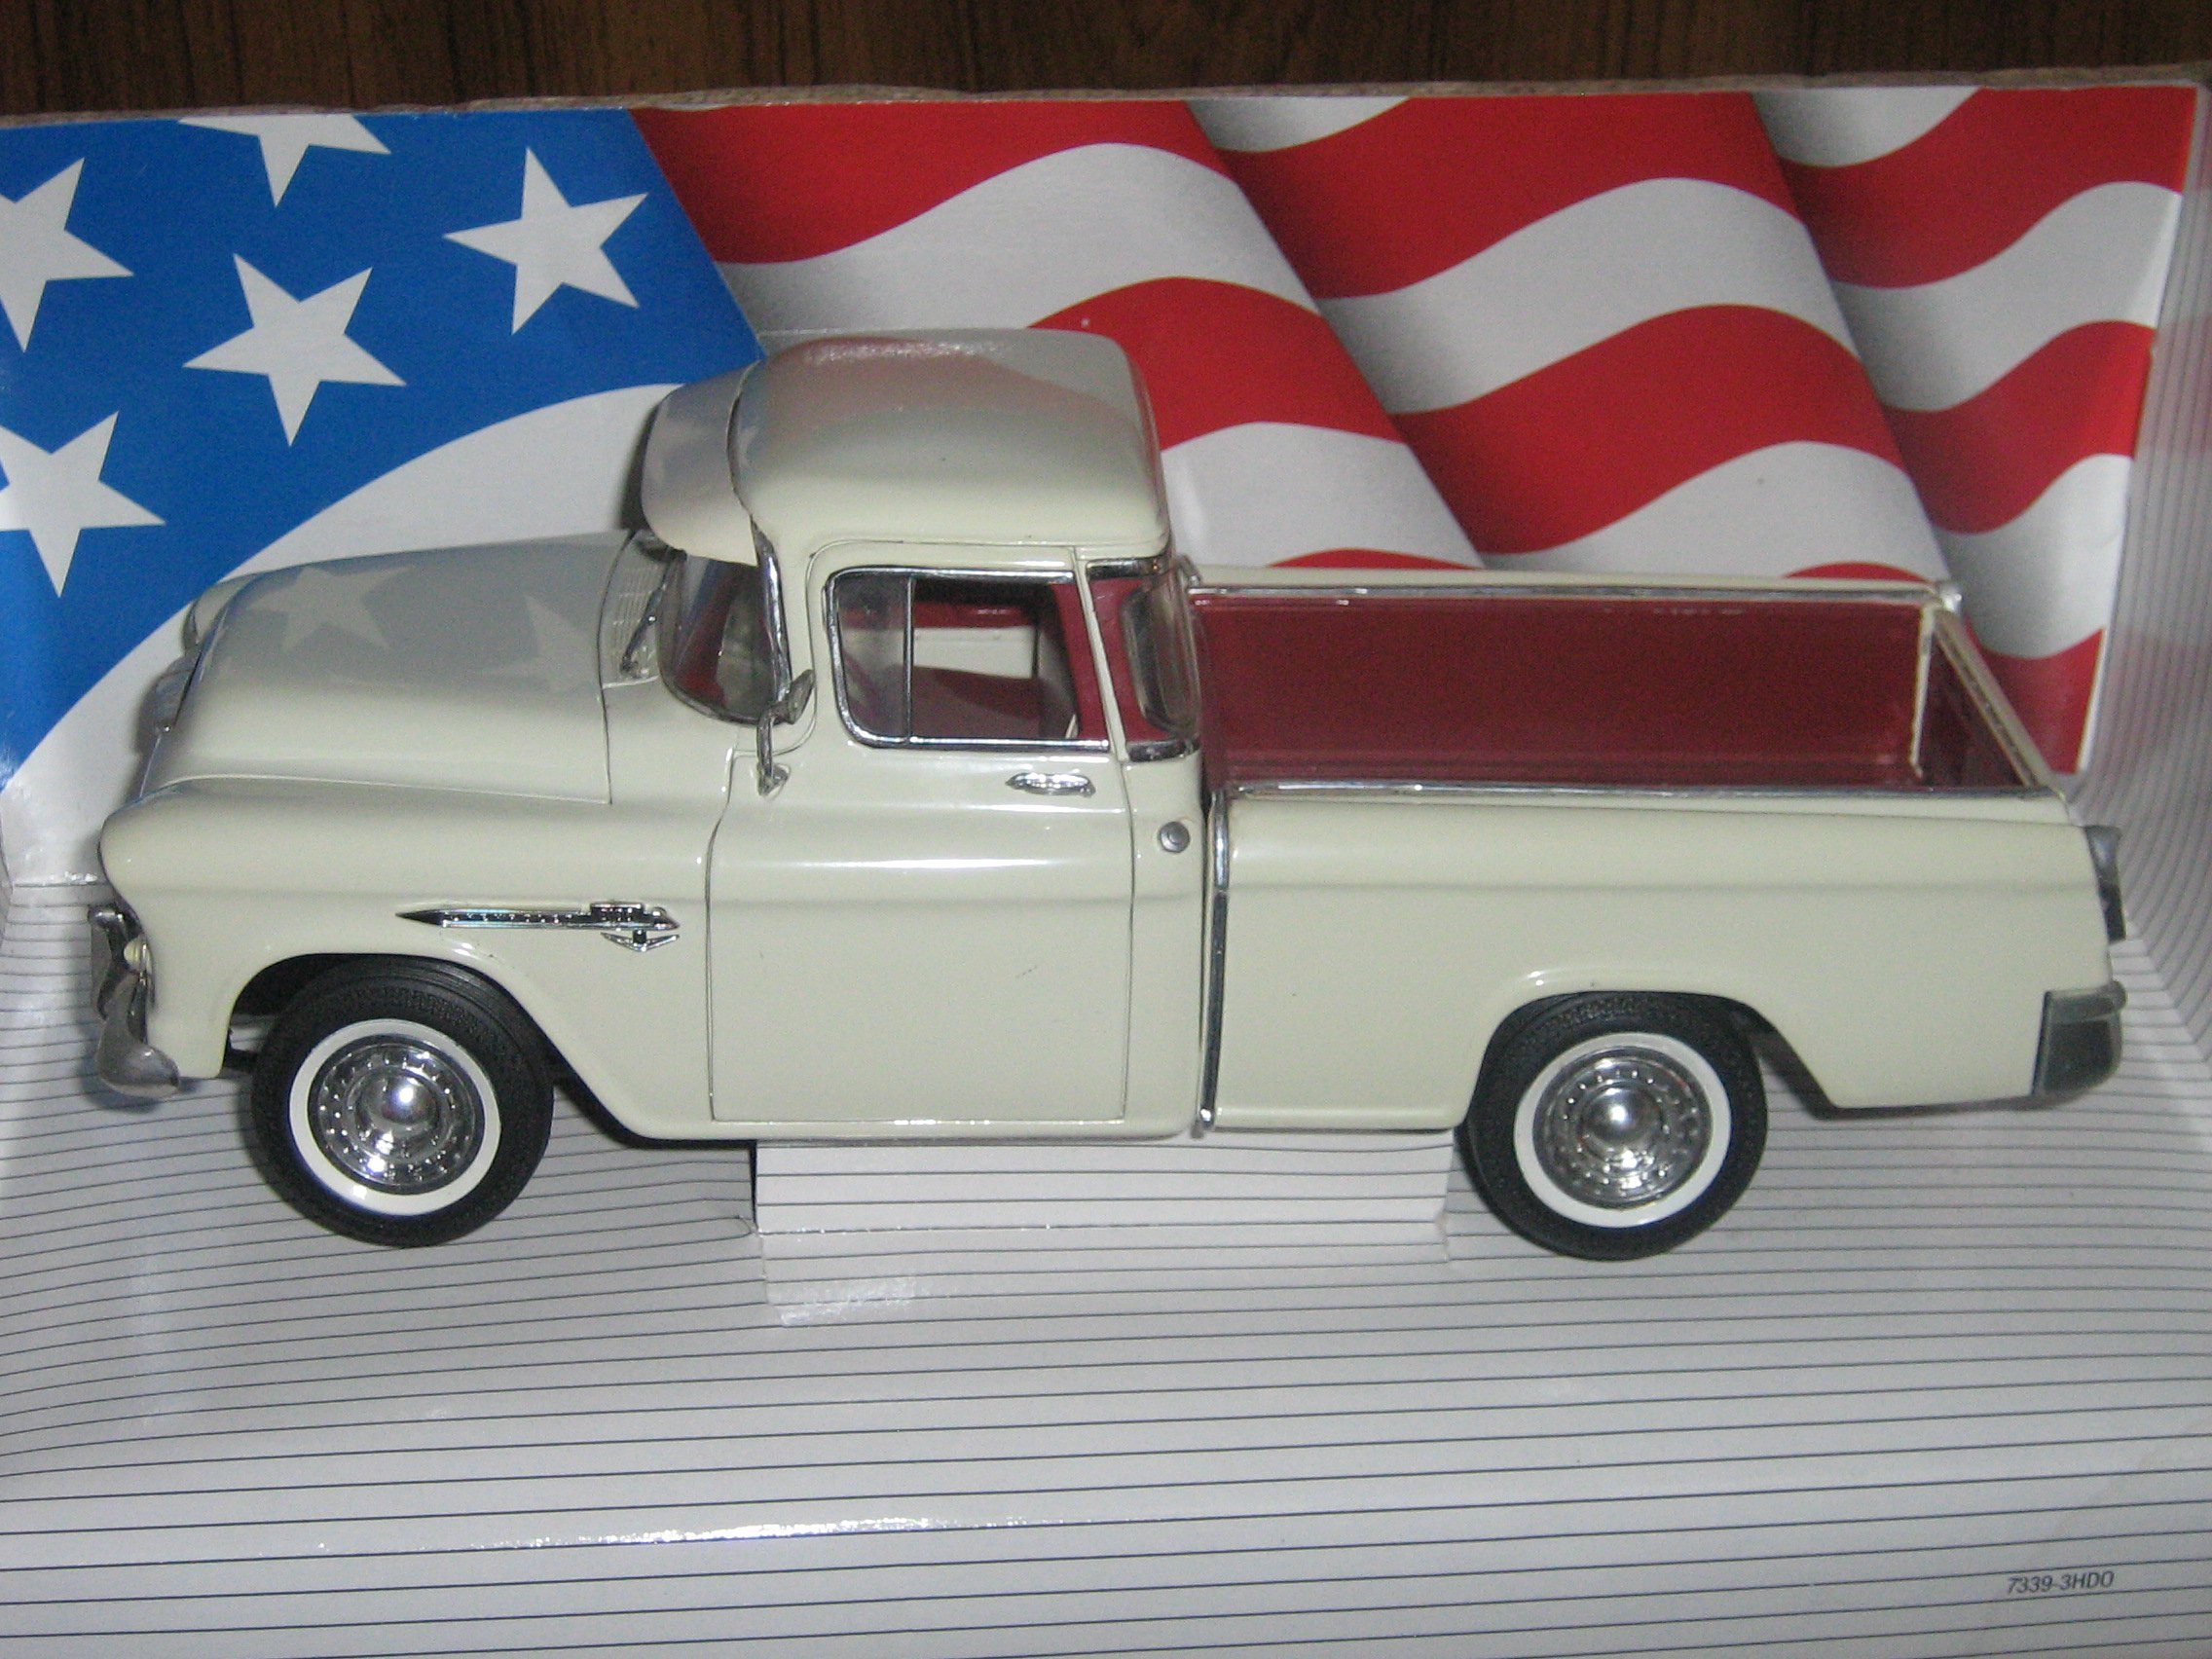 FOR SALE: 55 CHEVY 3100 CAMEO